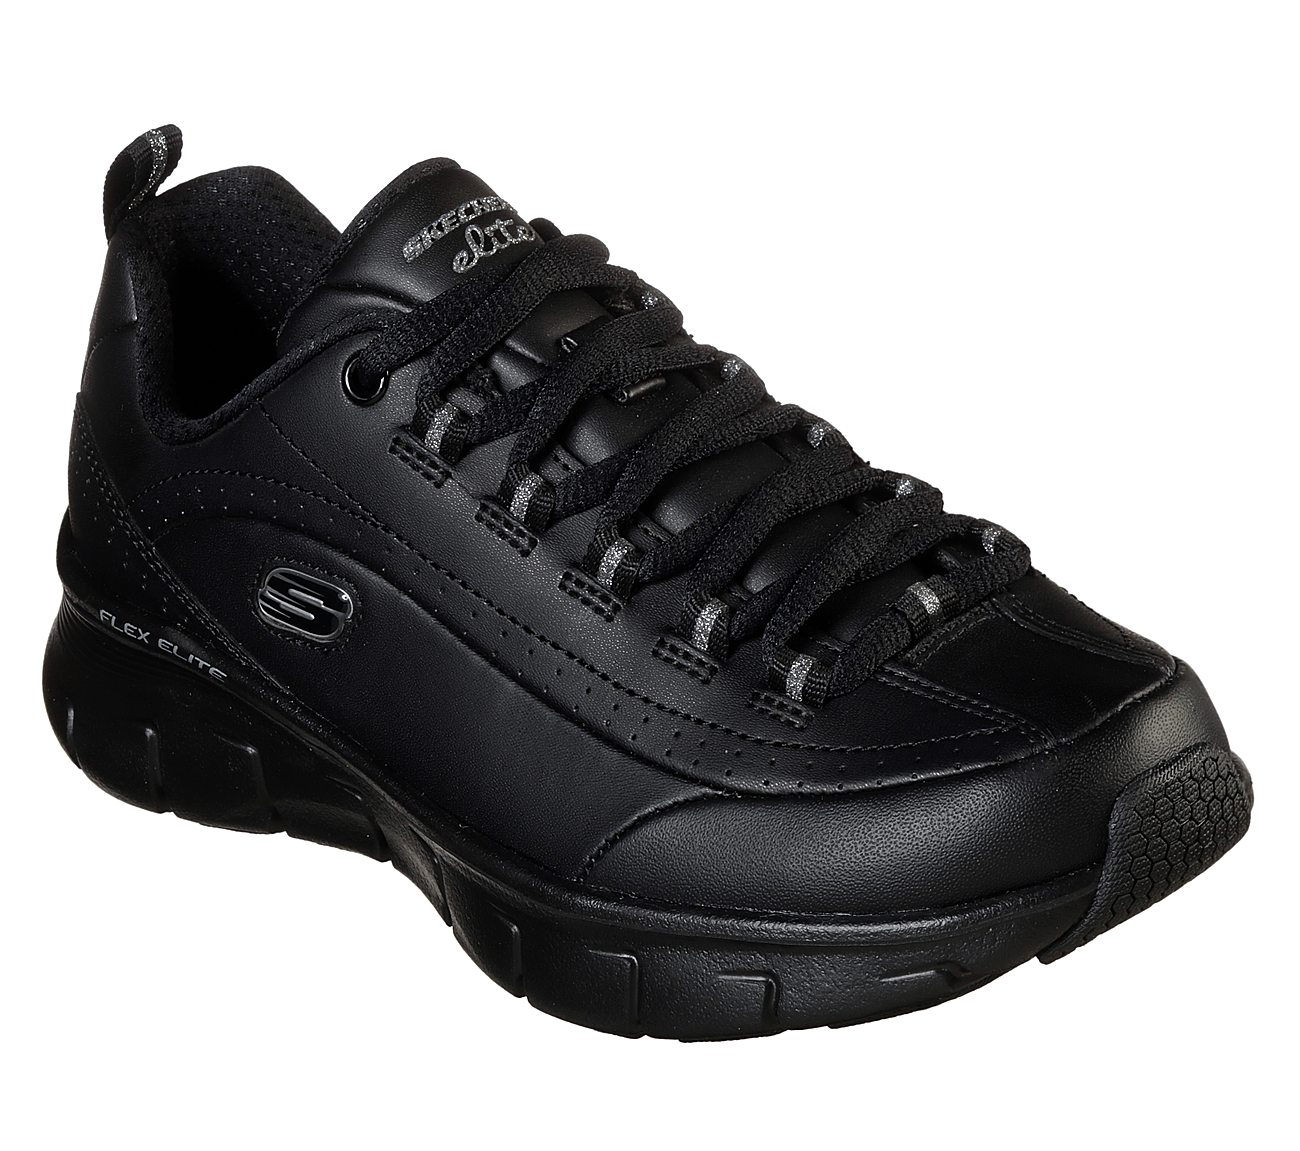 827f228d65 Buy SKECHERS Synergy 3.0 Sport Shoes only $70.00